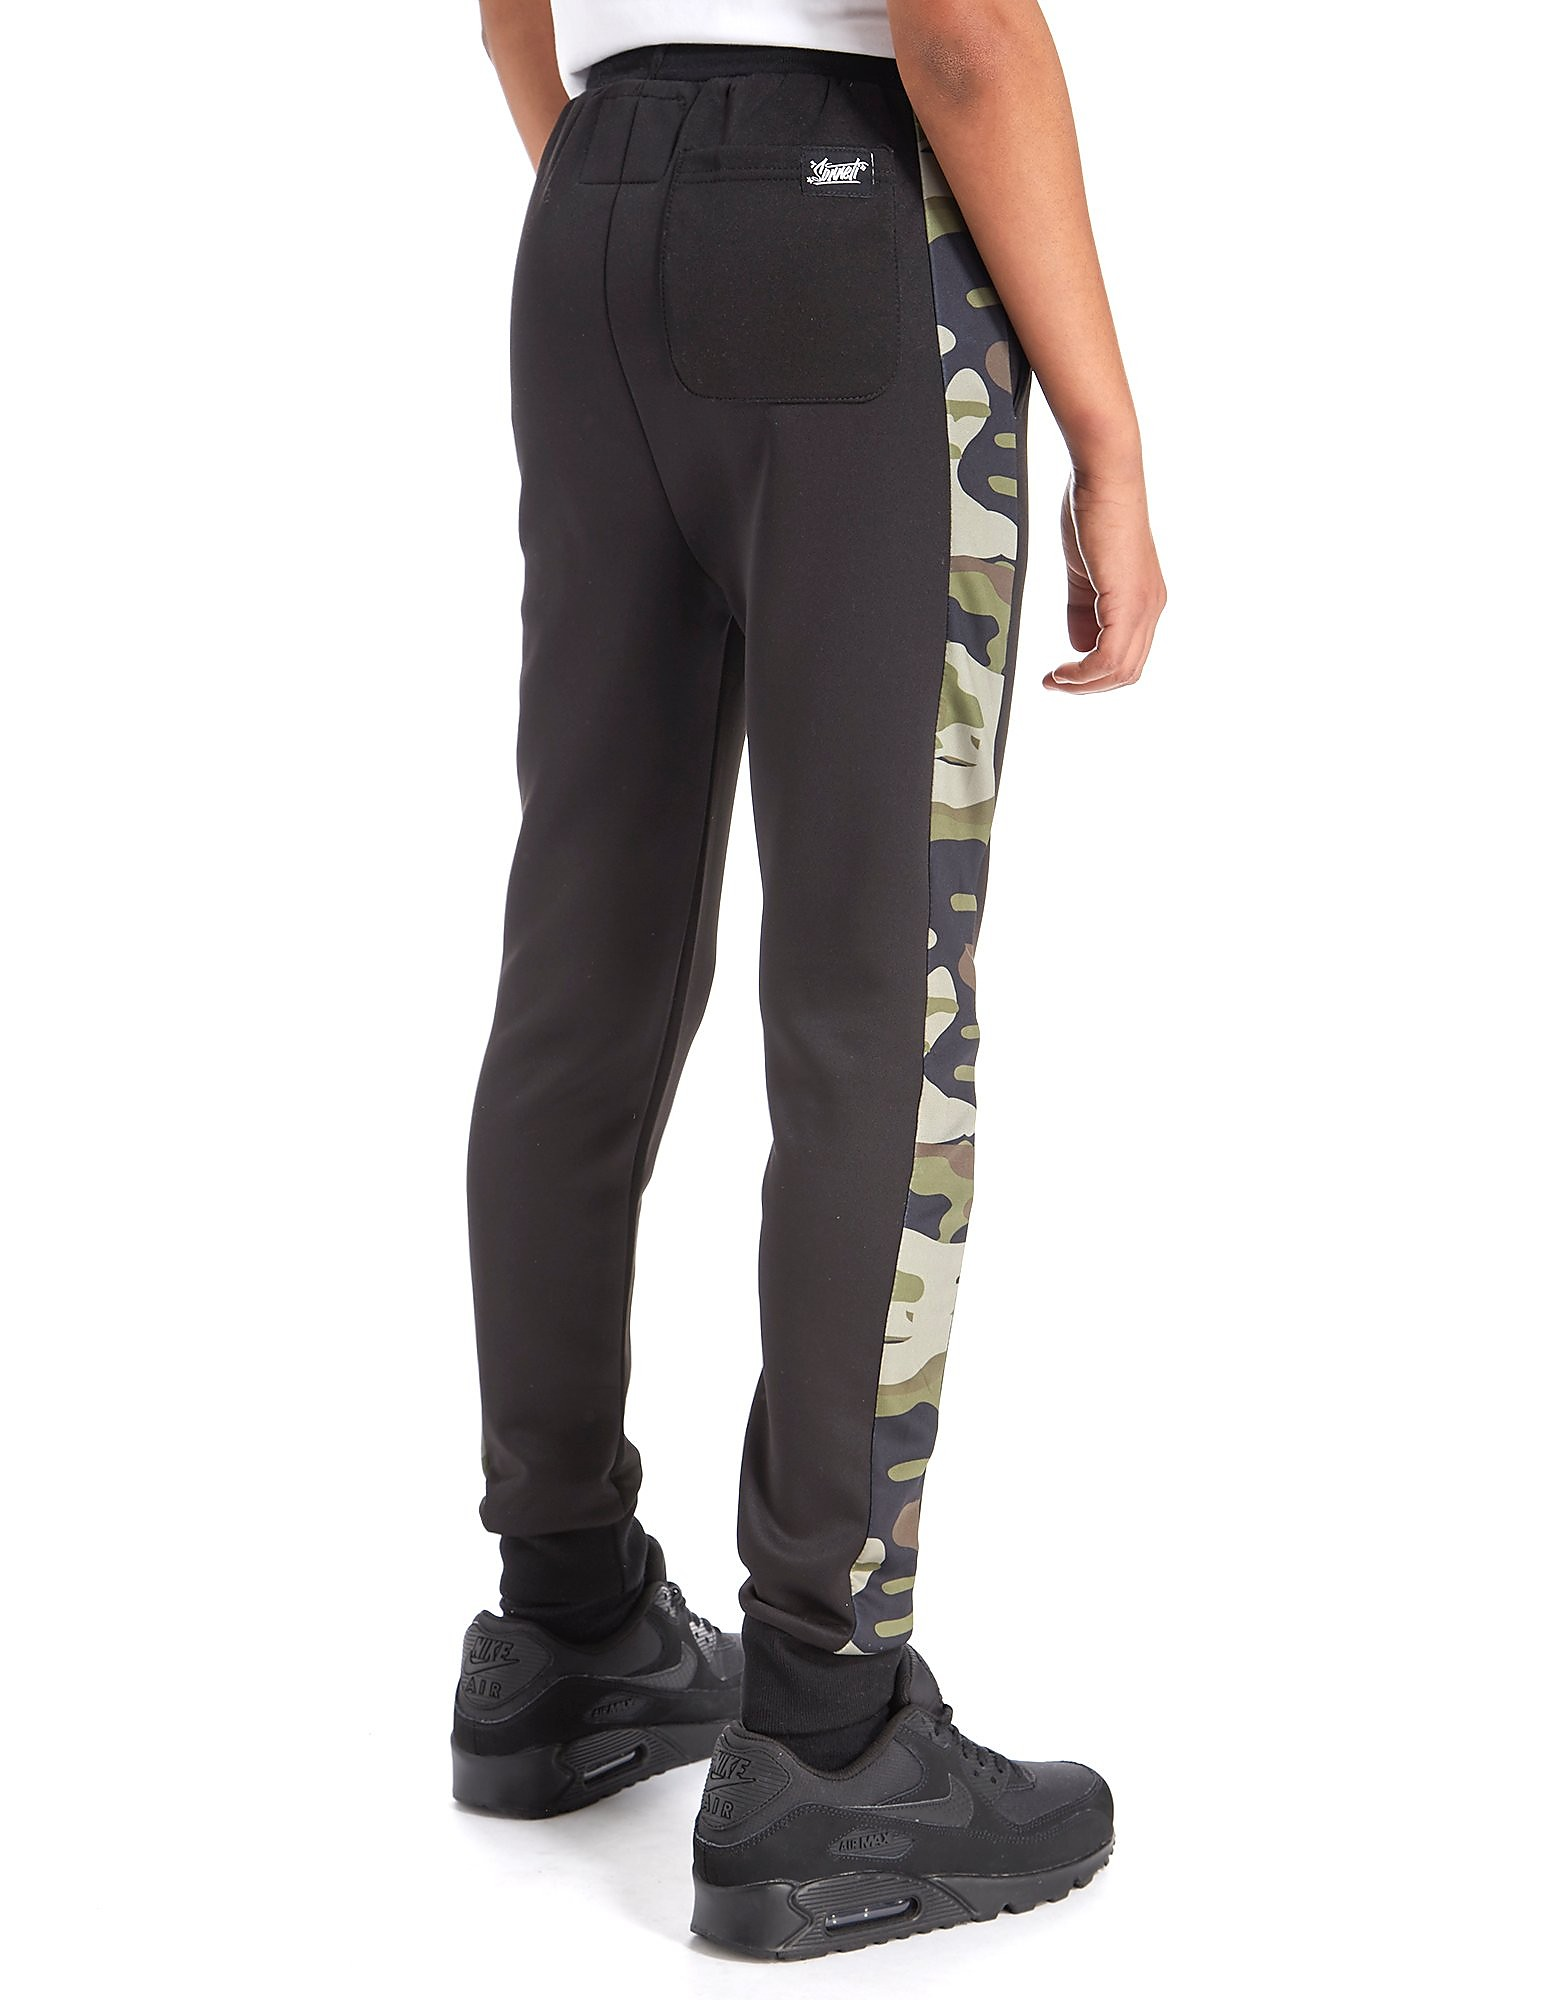 Sonneti Siege Pants Junior